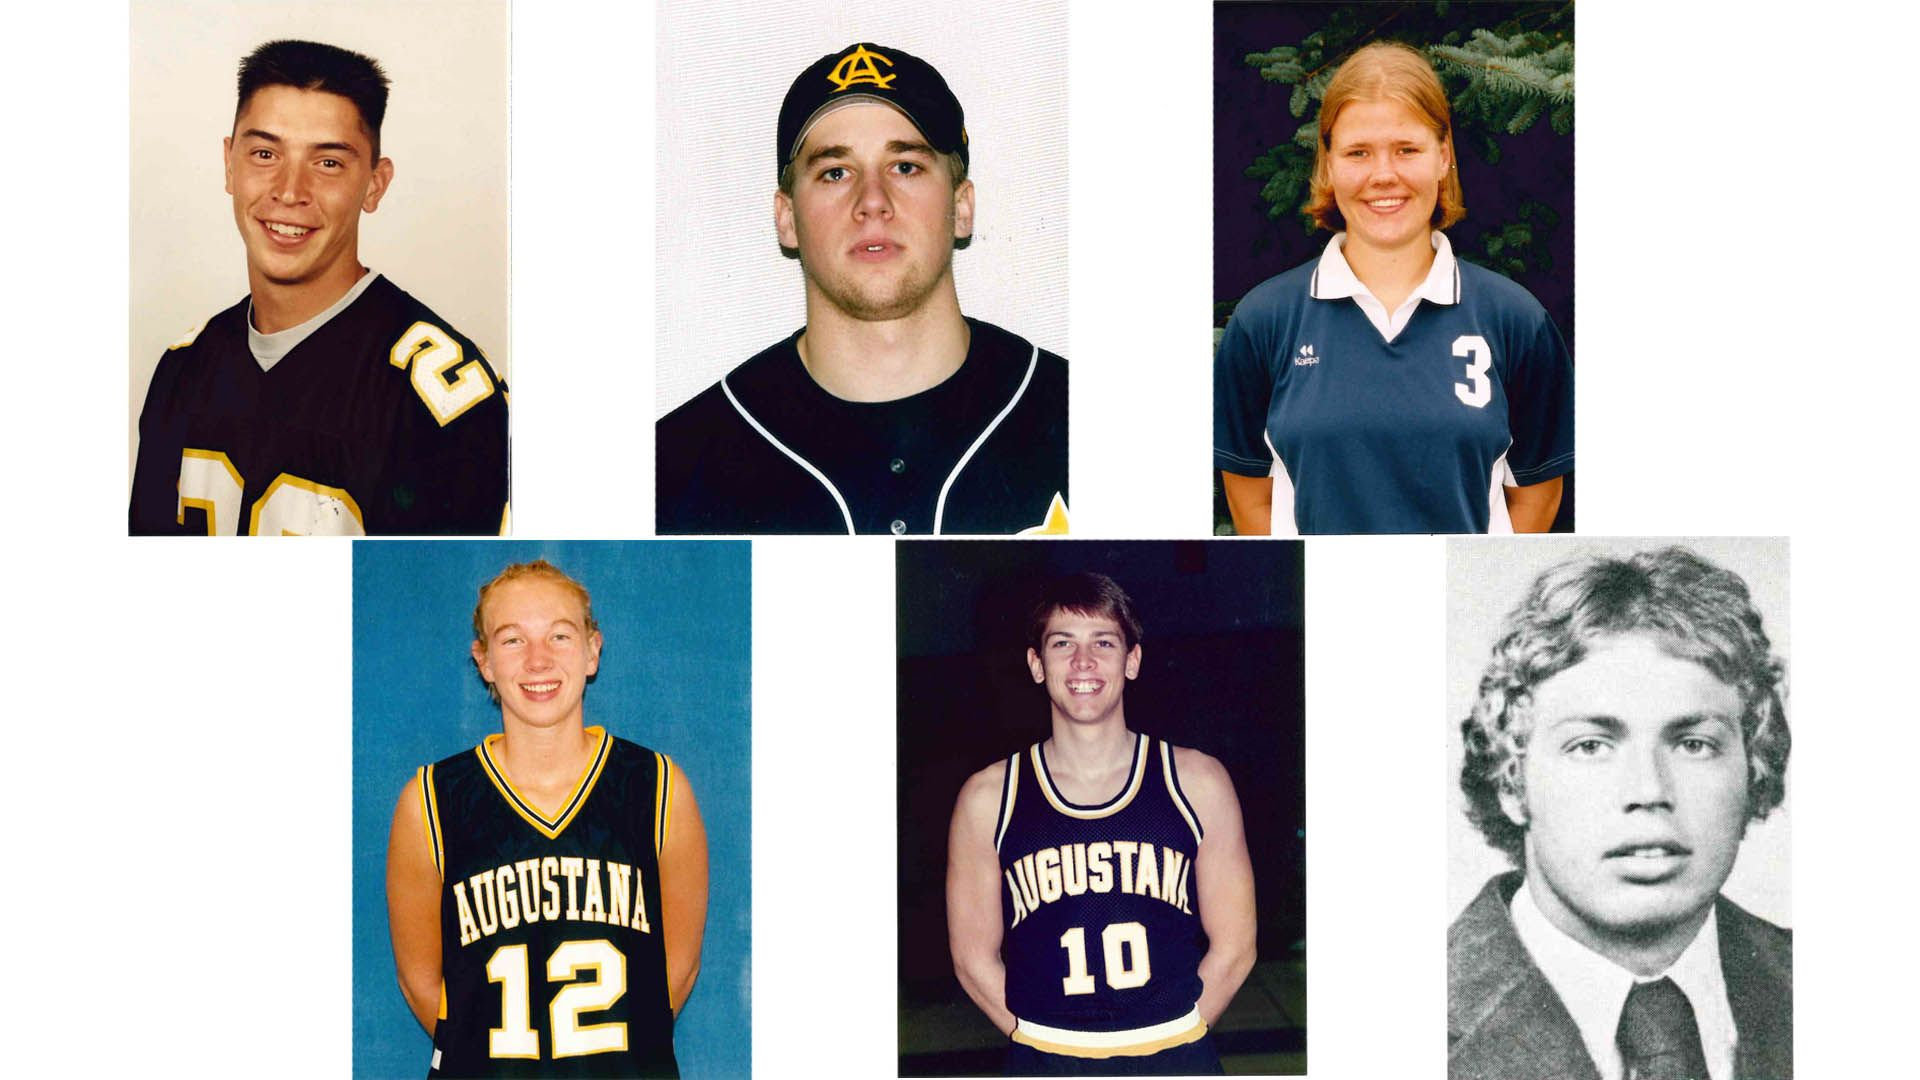 The Newest 2017 Hall Of Fame Members Include Former Football Standout Kevin Kaesviharn 1998 Football Player Jim Clemens Hall Of Fame Womens Basketball Fame